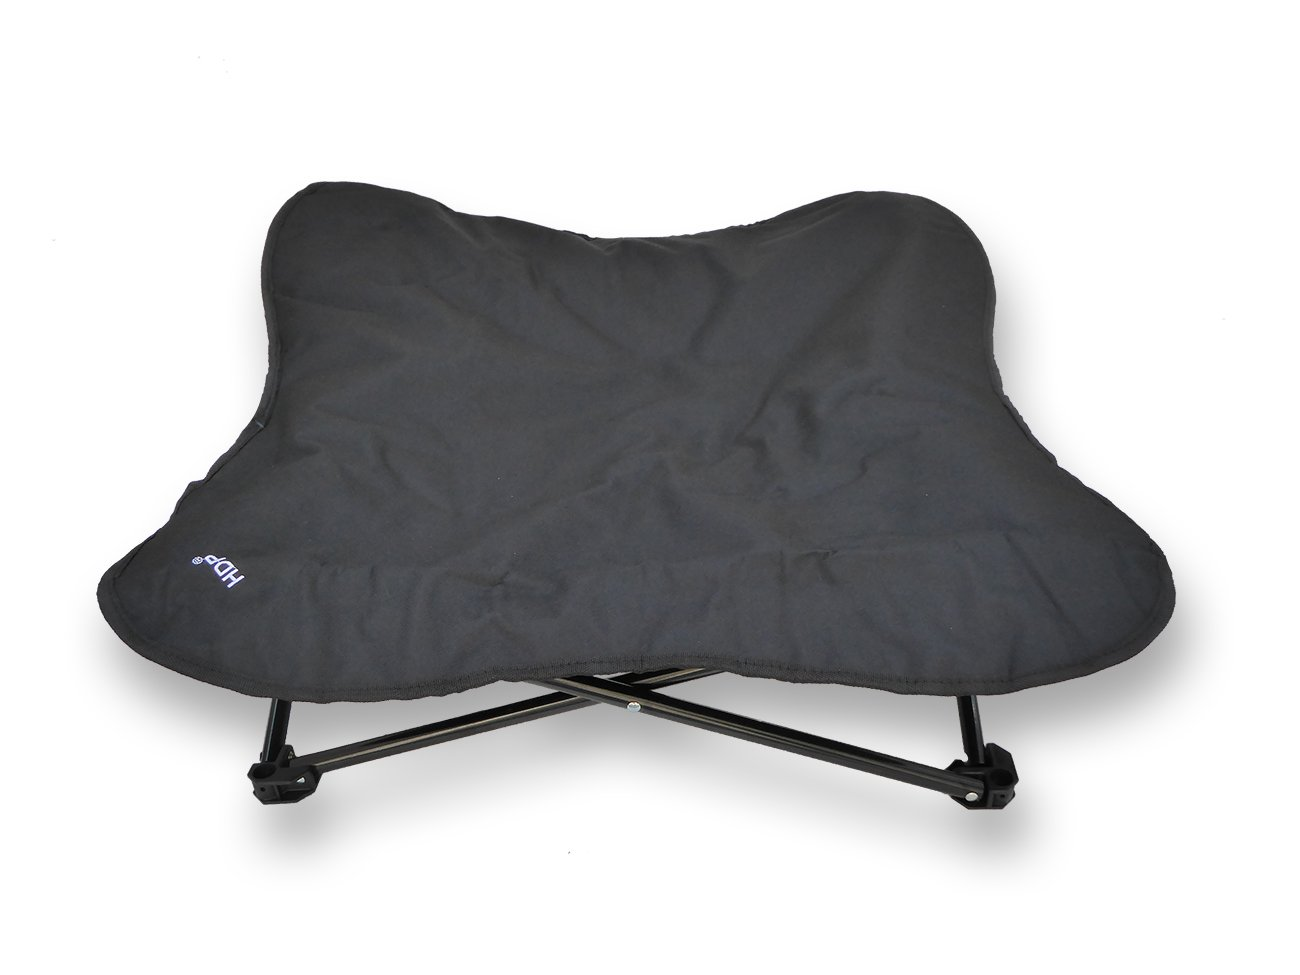 HDP Elevated Padded Napper Cot Space Saver Pet Bed Color:Black Size:Medium